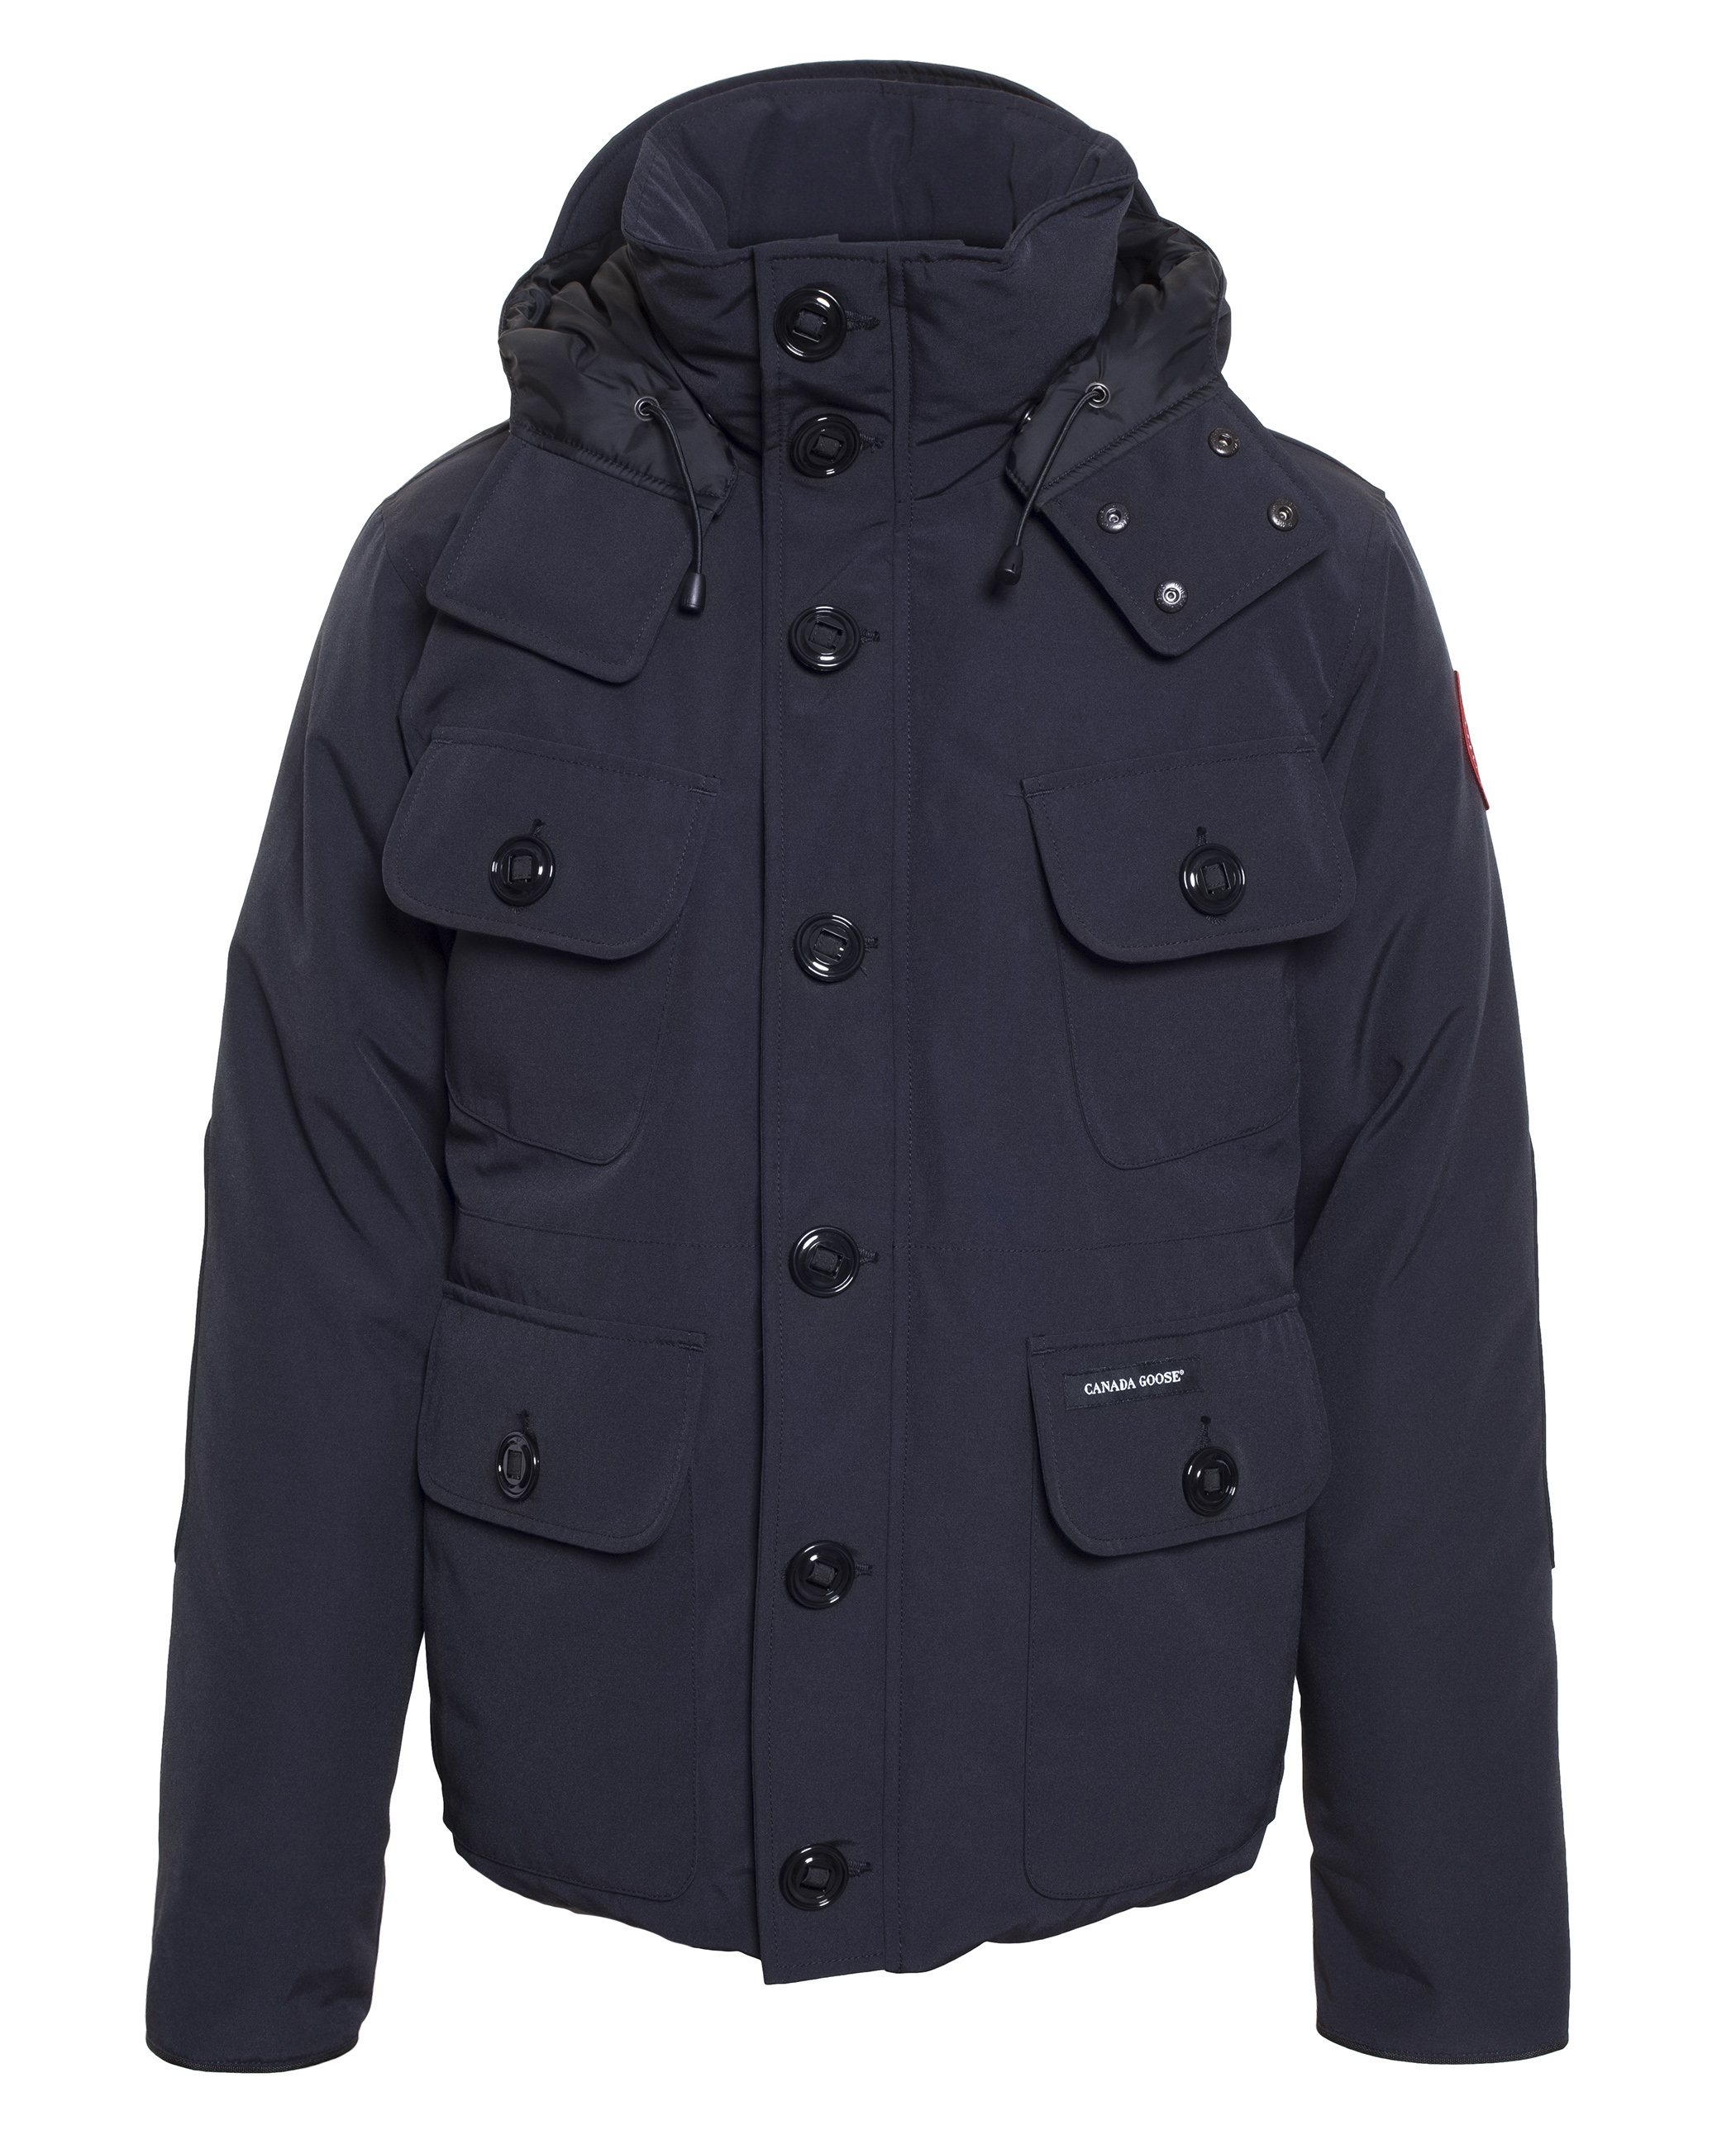 canada goose mens snow mantra parka jackets coats navy ...